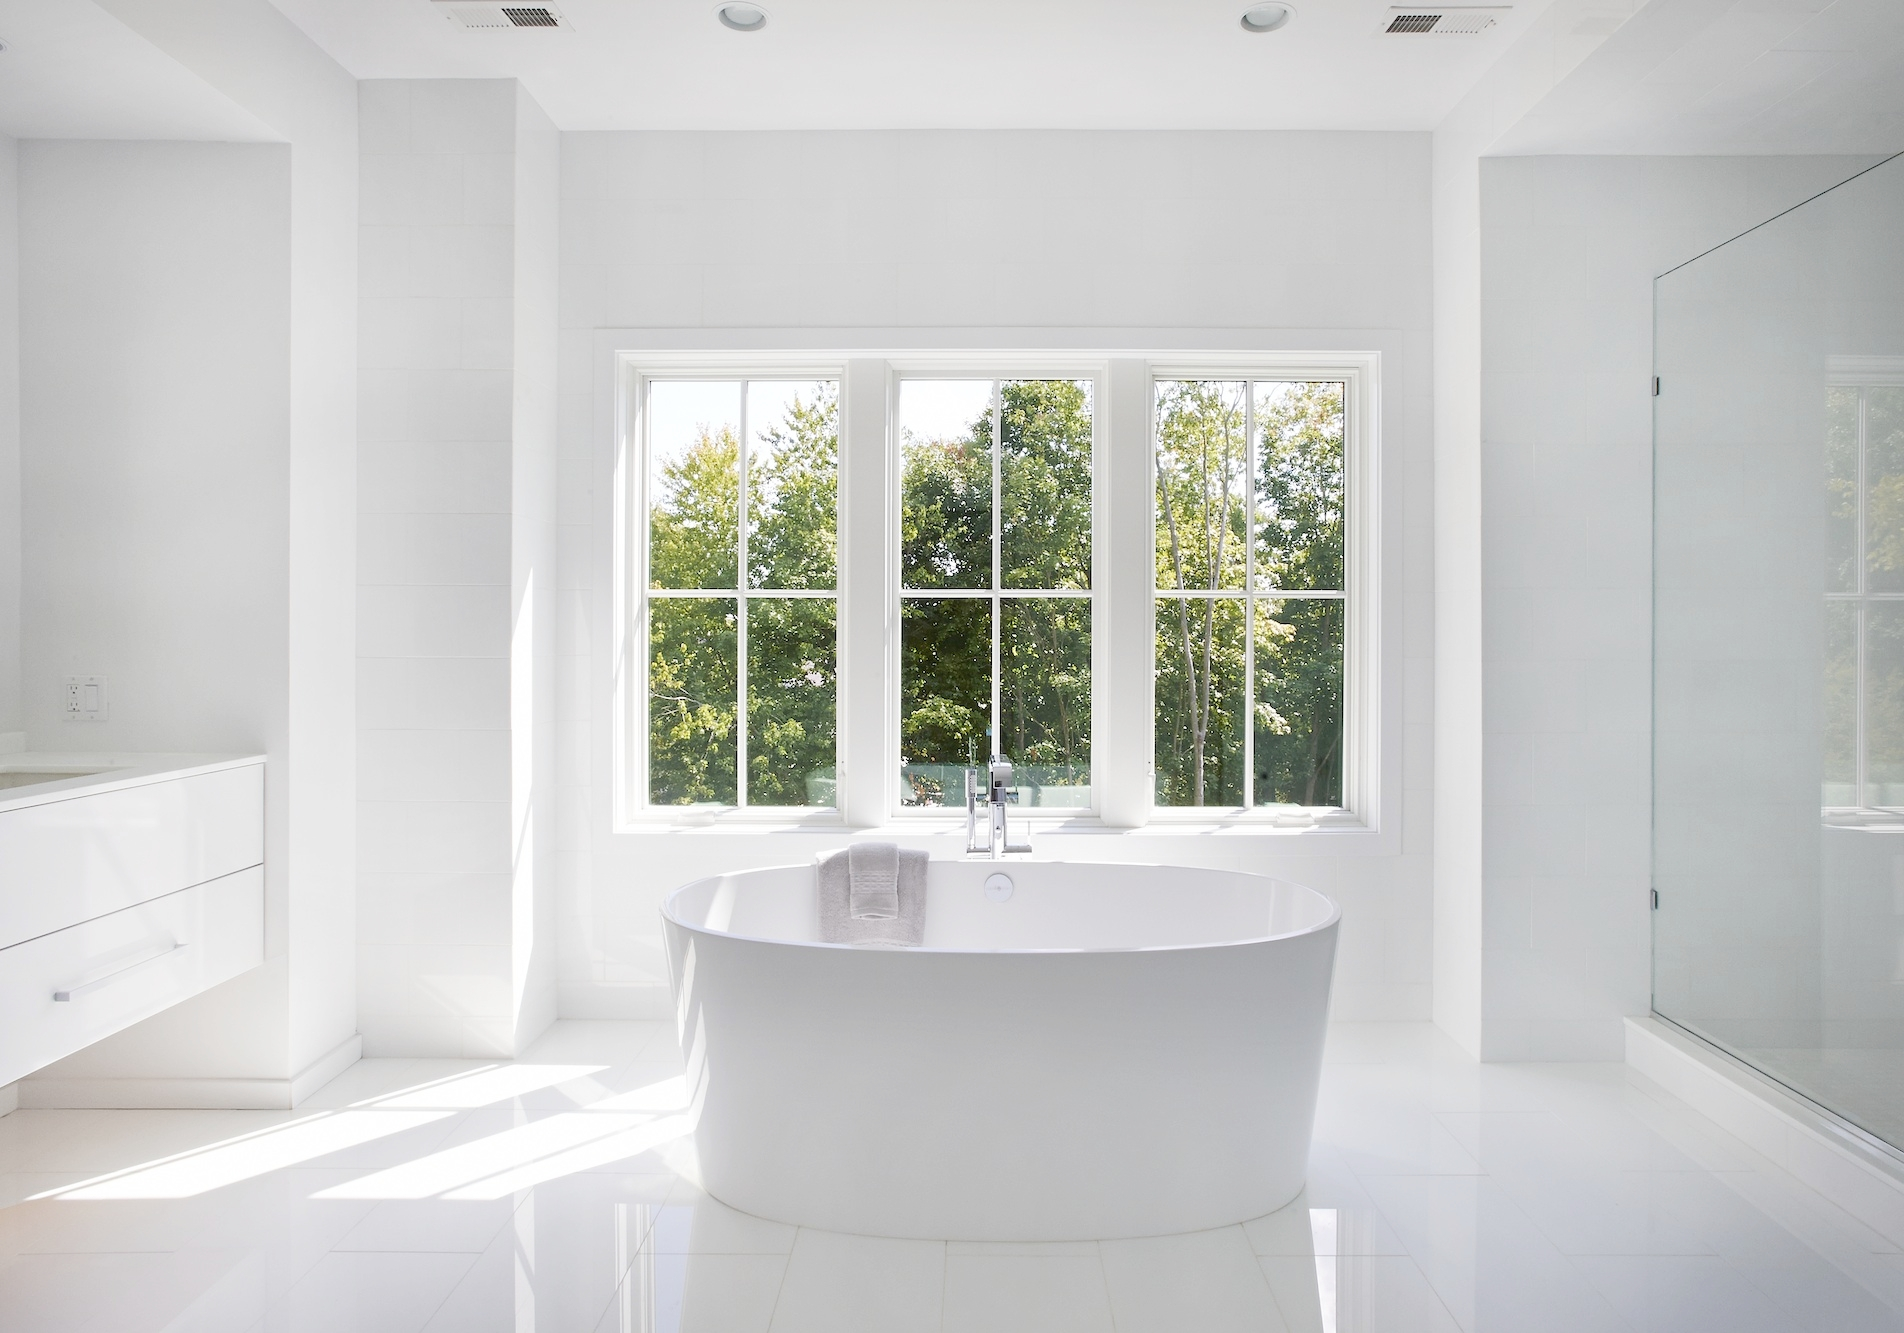 Adams+Farm+Bath+Tub.jpg